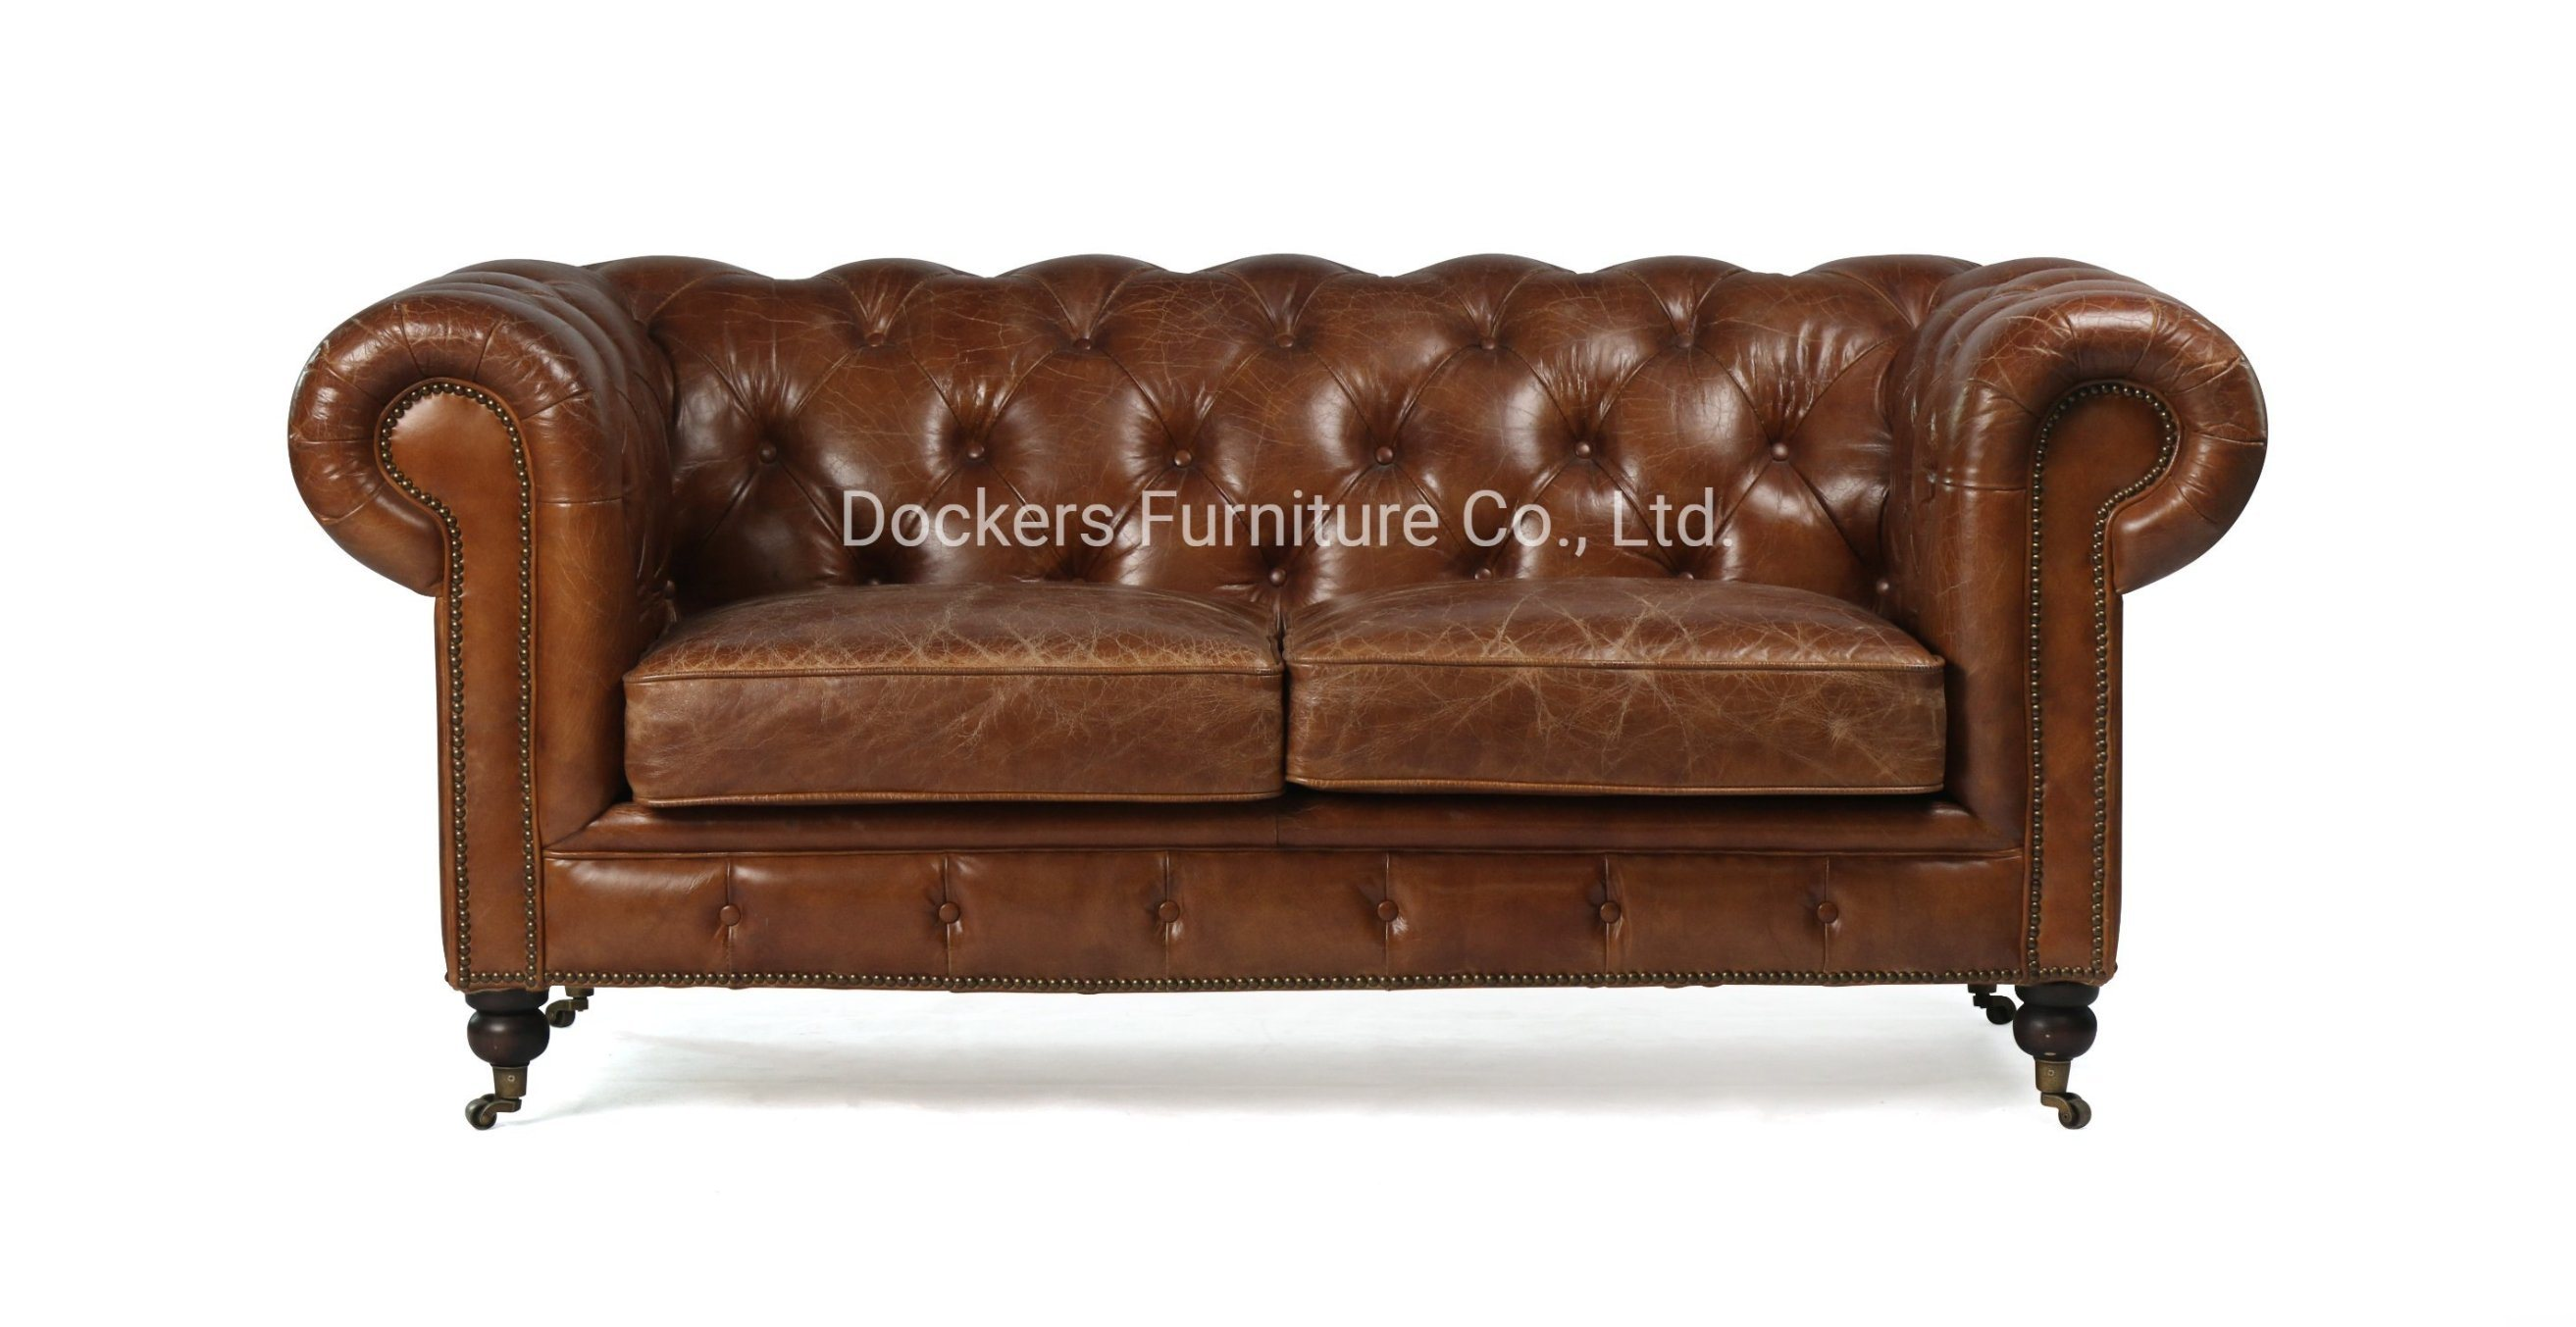 - China Home Furniture Living Room Rustic Style Vintage Cigar